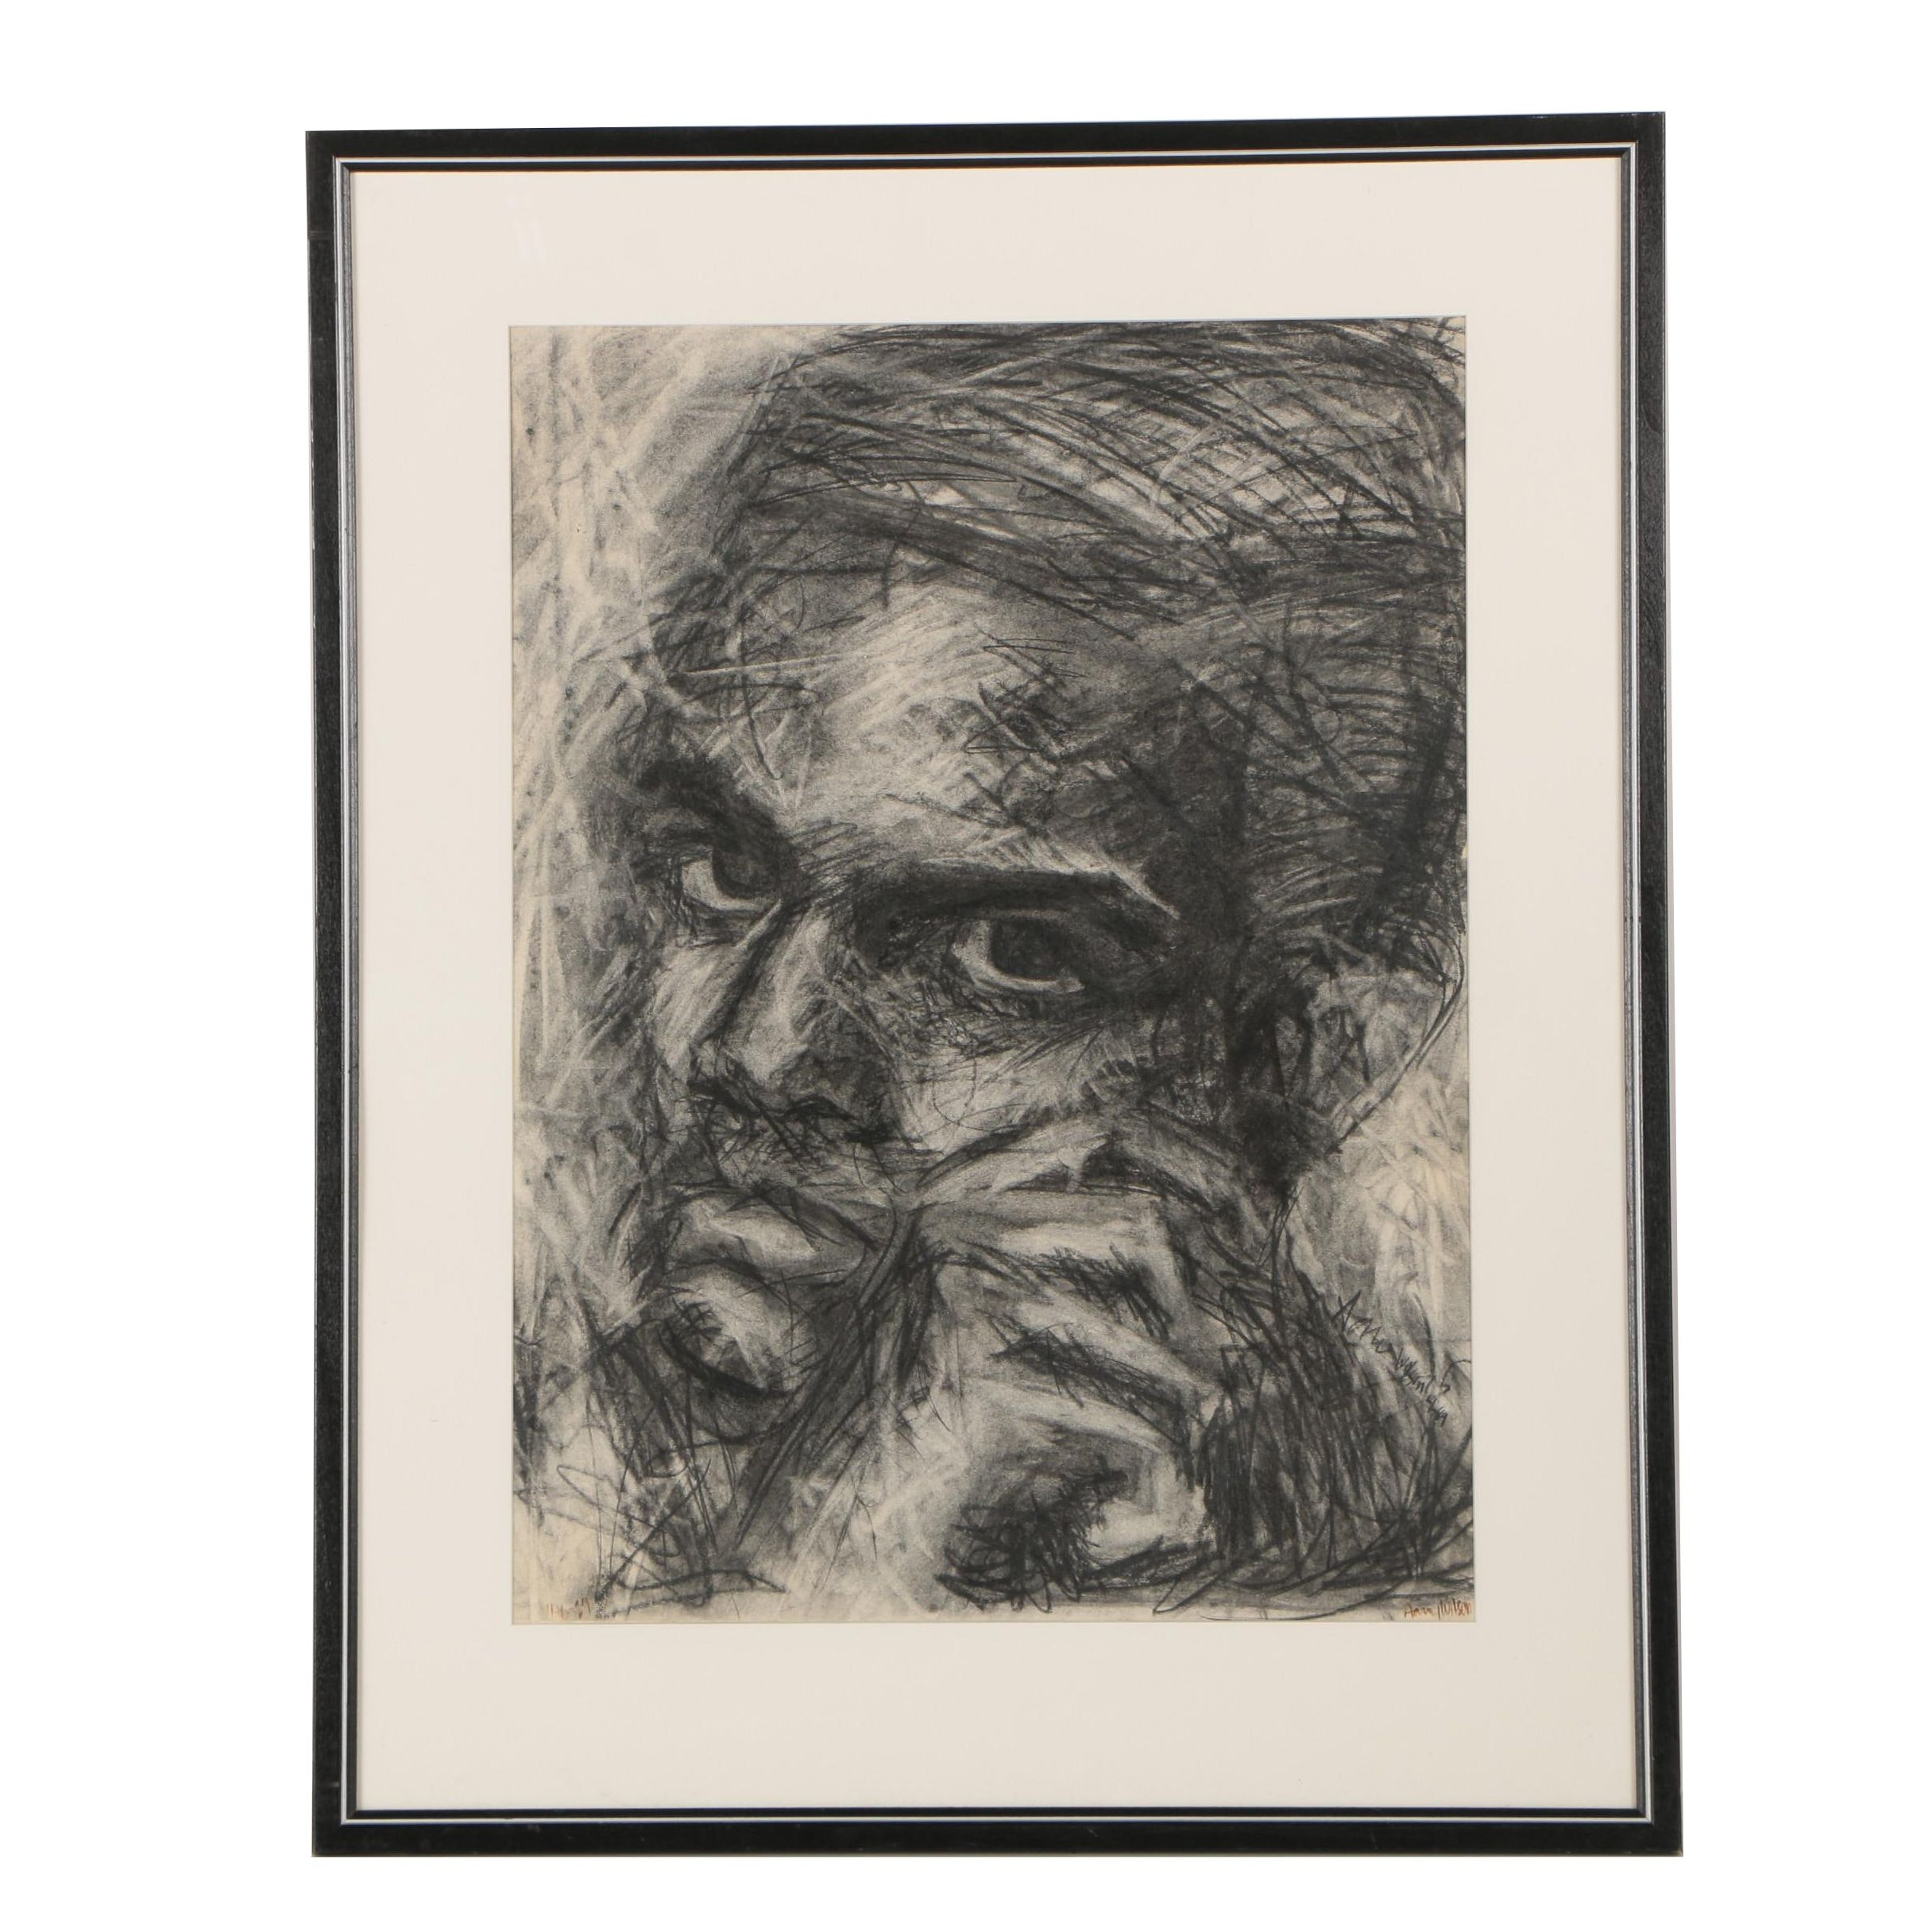 1989 Aaron Wilson Charcoal Drawing